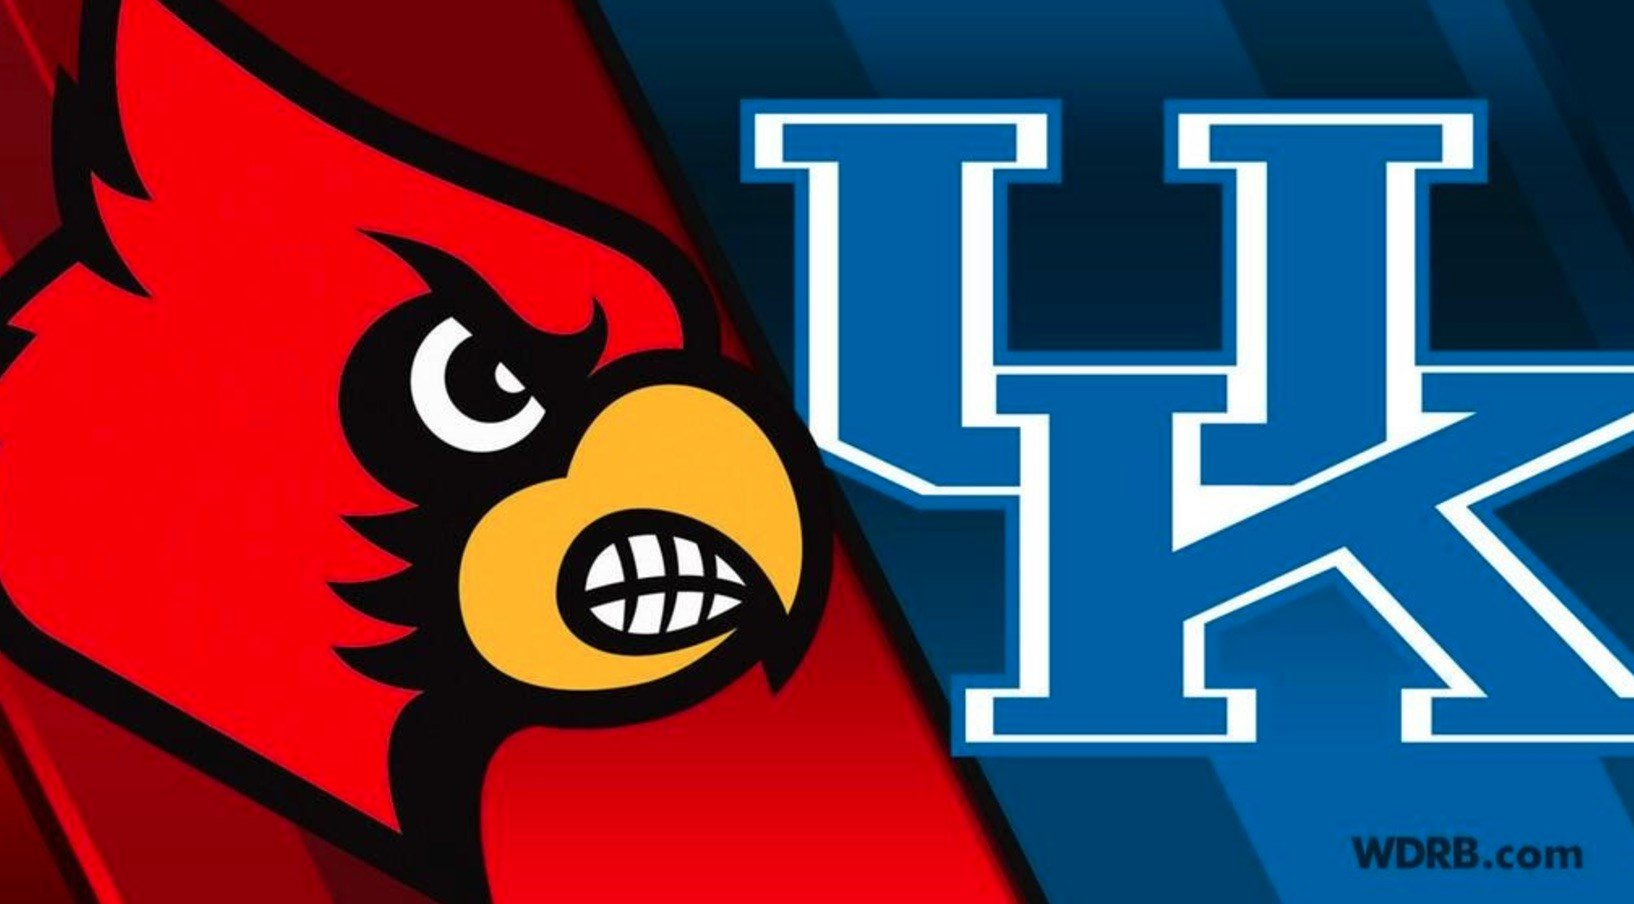 Both Louisville and Kentucky need wins Saturday for different reasons.